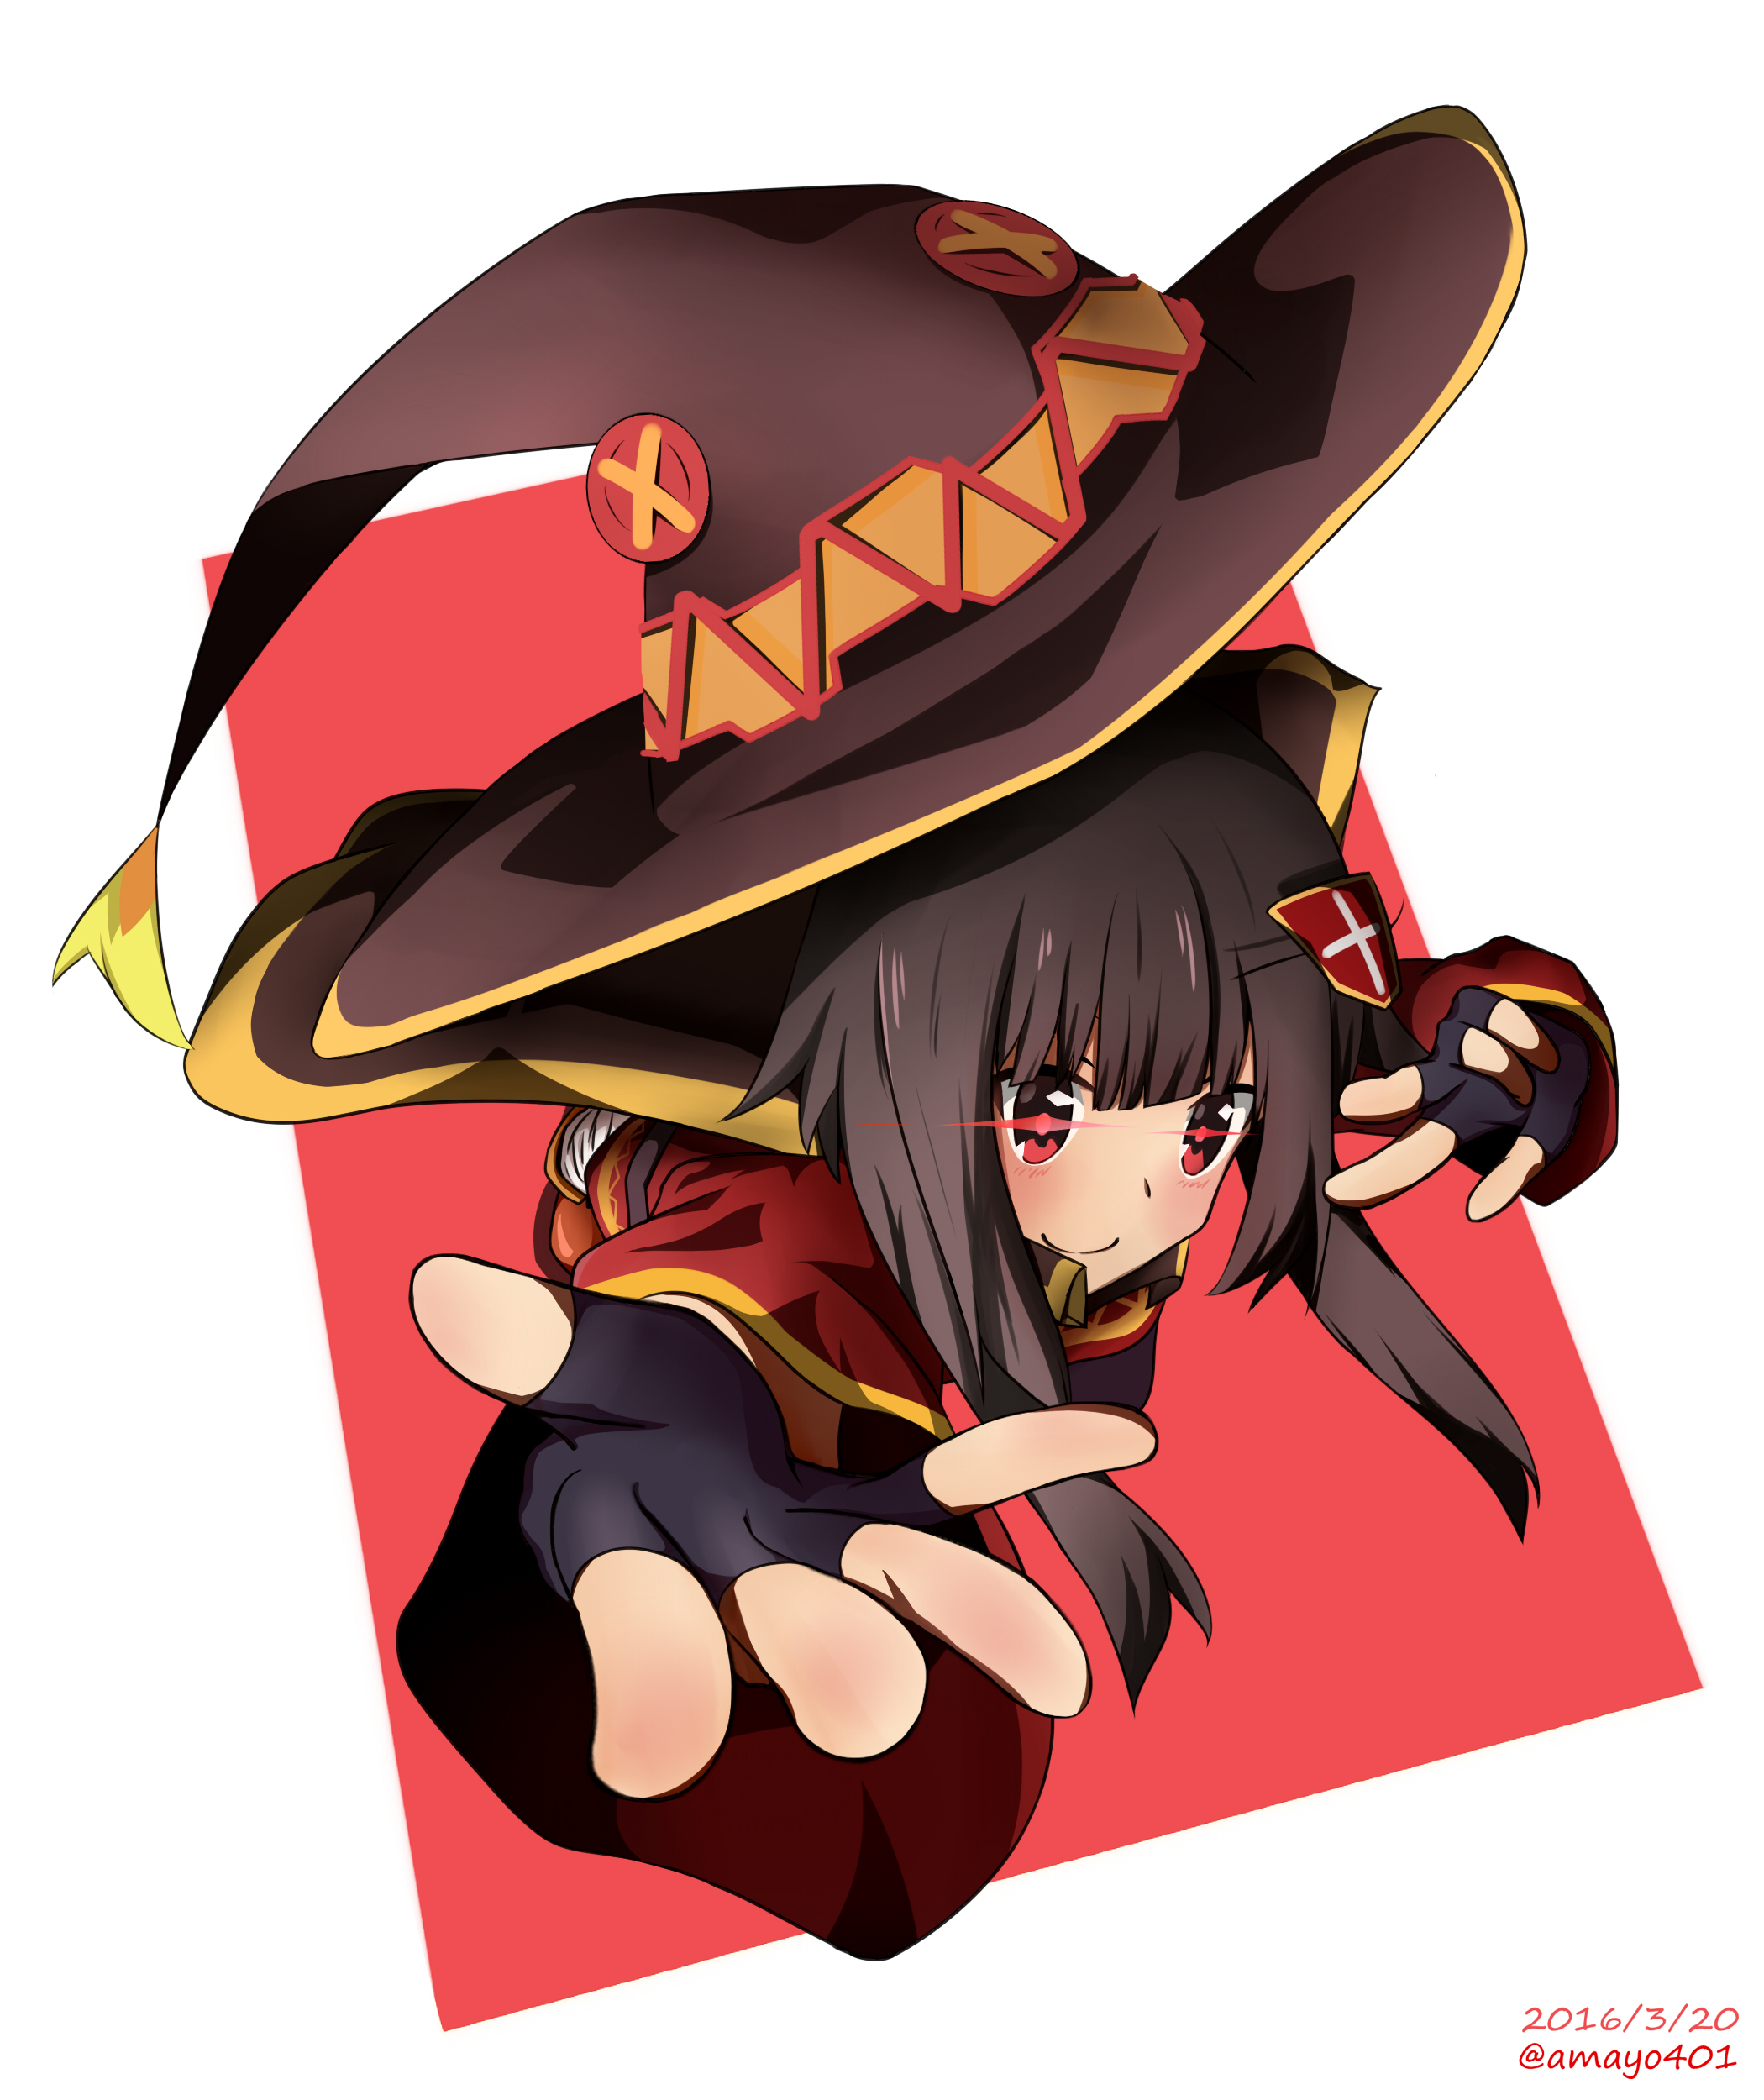 Would you go adventure with Megumin? [KonoSuba] (x-post /r/Megumin)